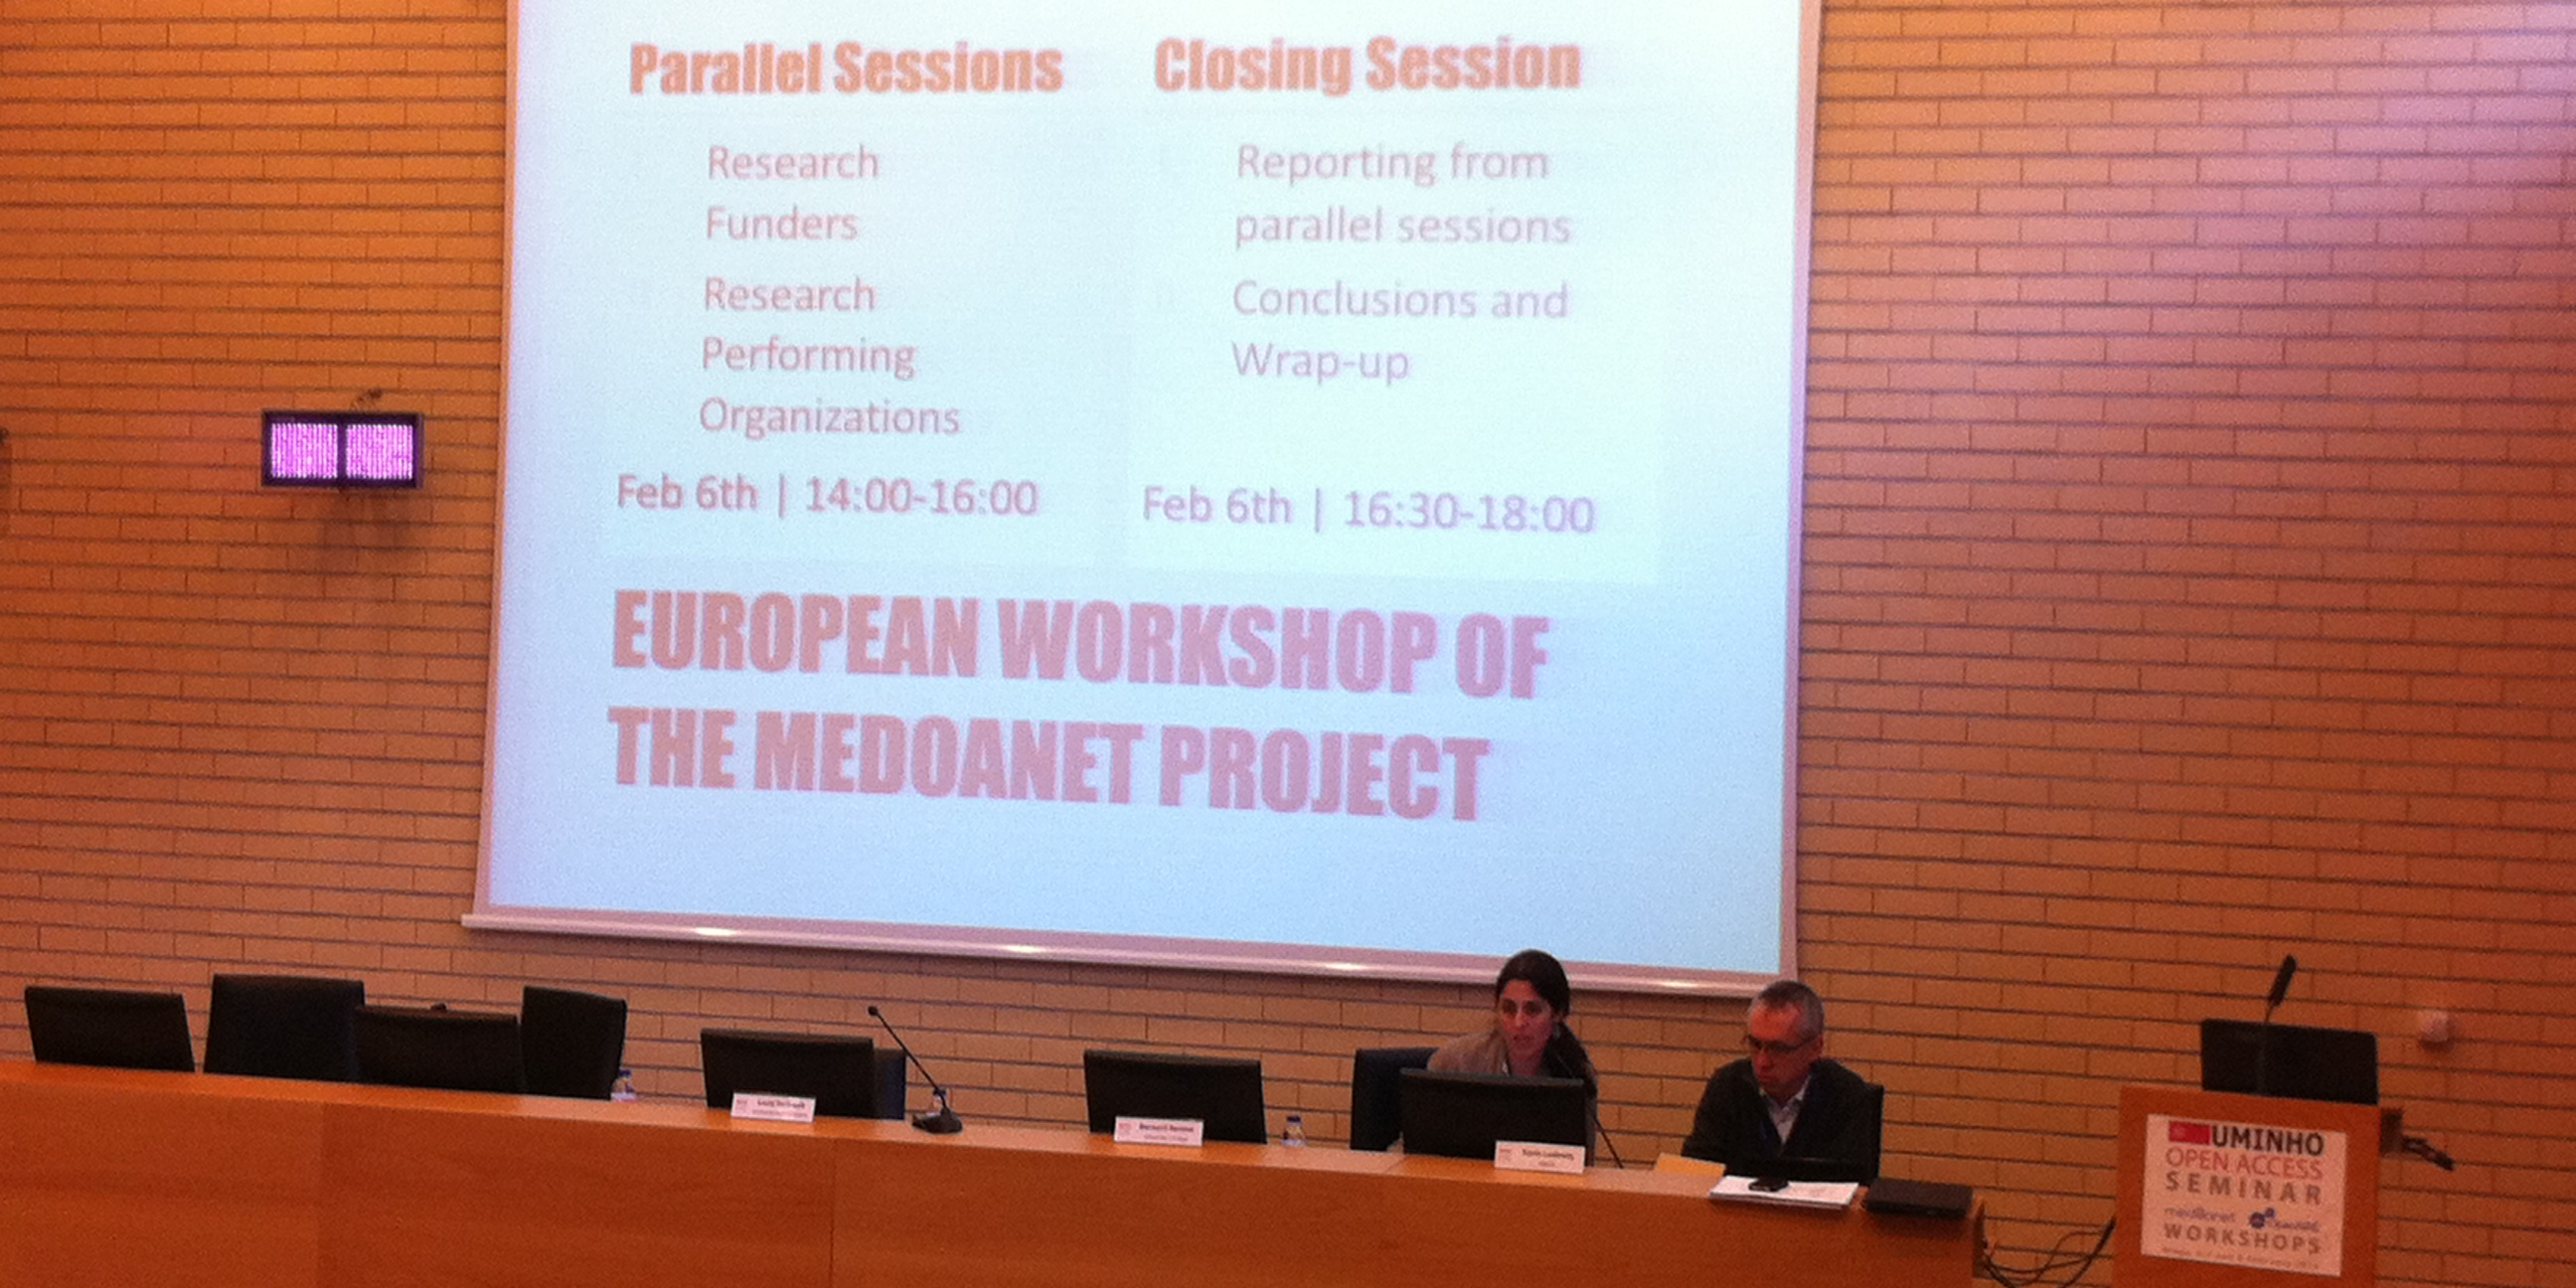 The MedOANet European Workshop Press Release